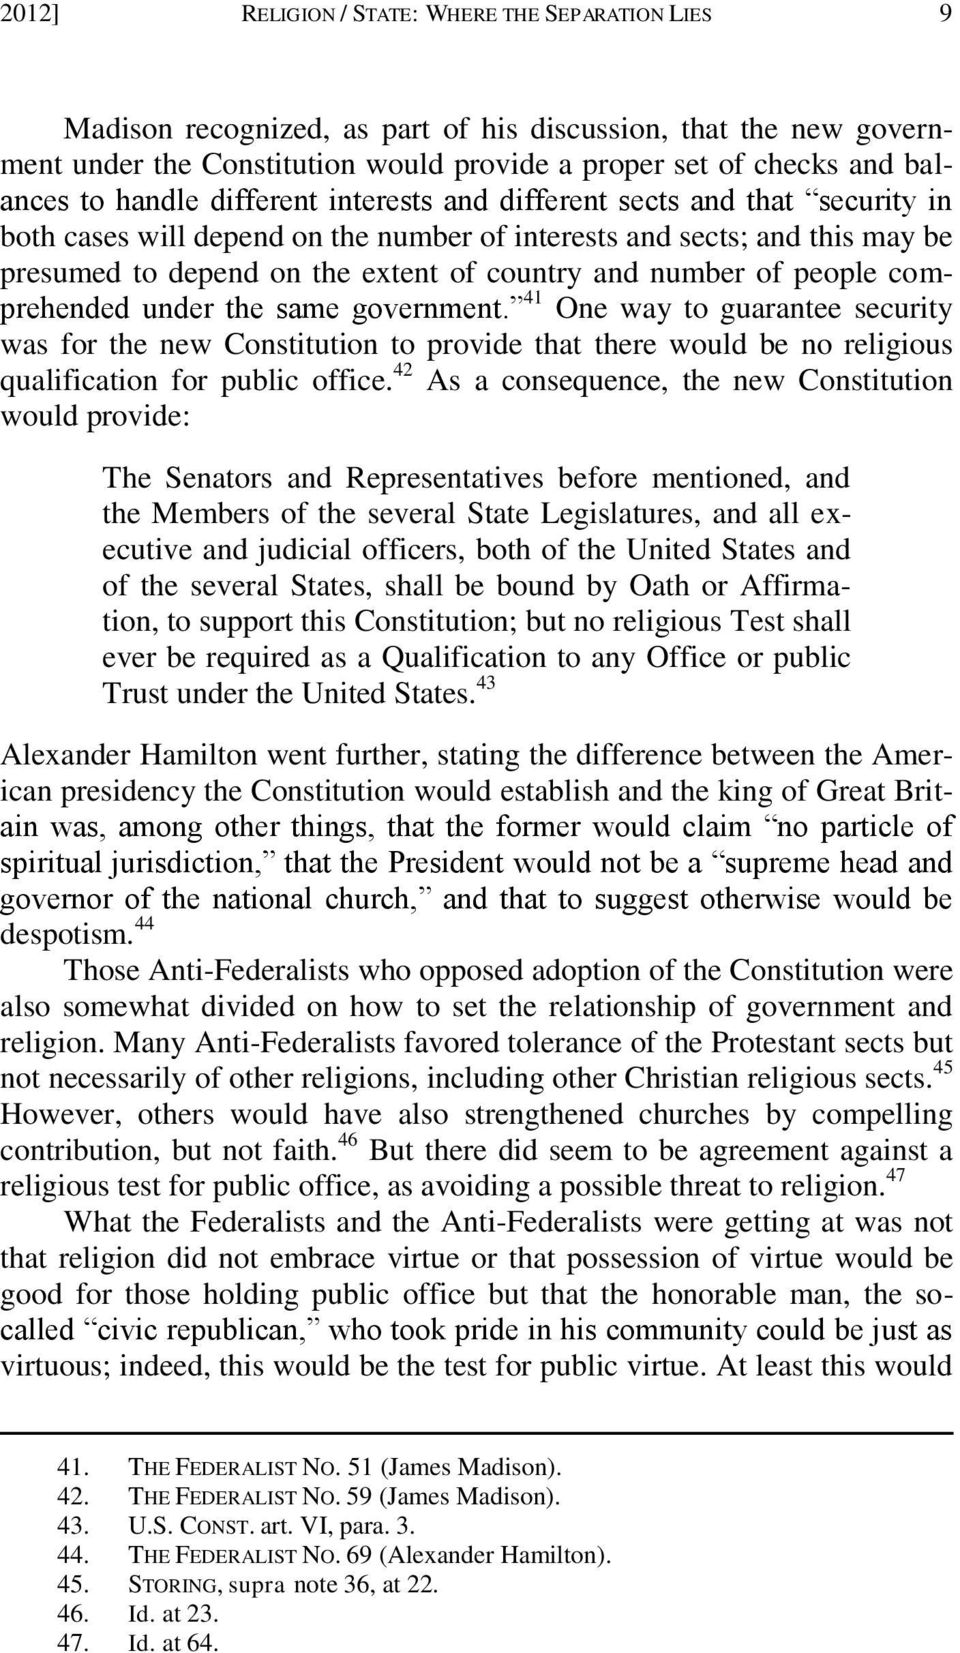 of people comprehended under the same government. 41 One way to guarantee security was for the new Constitution to provide that there would be no religious qualification for public office.